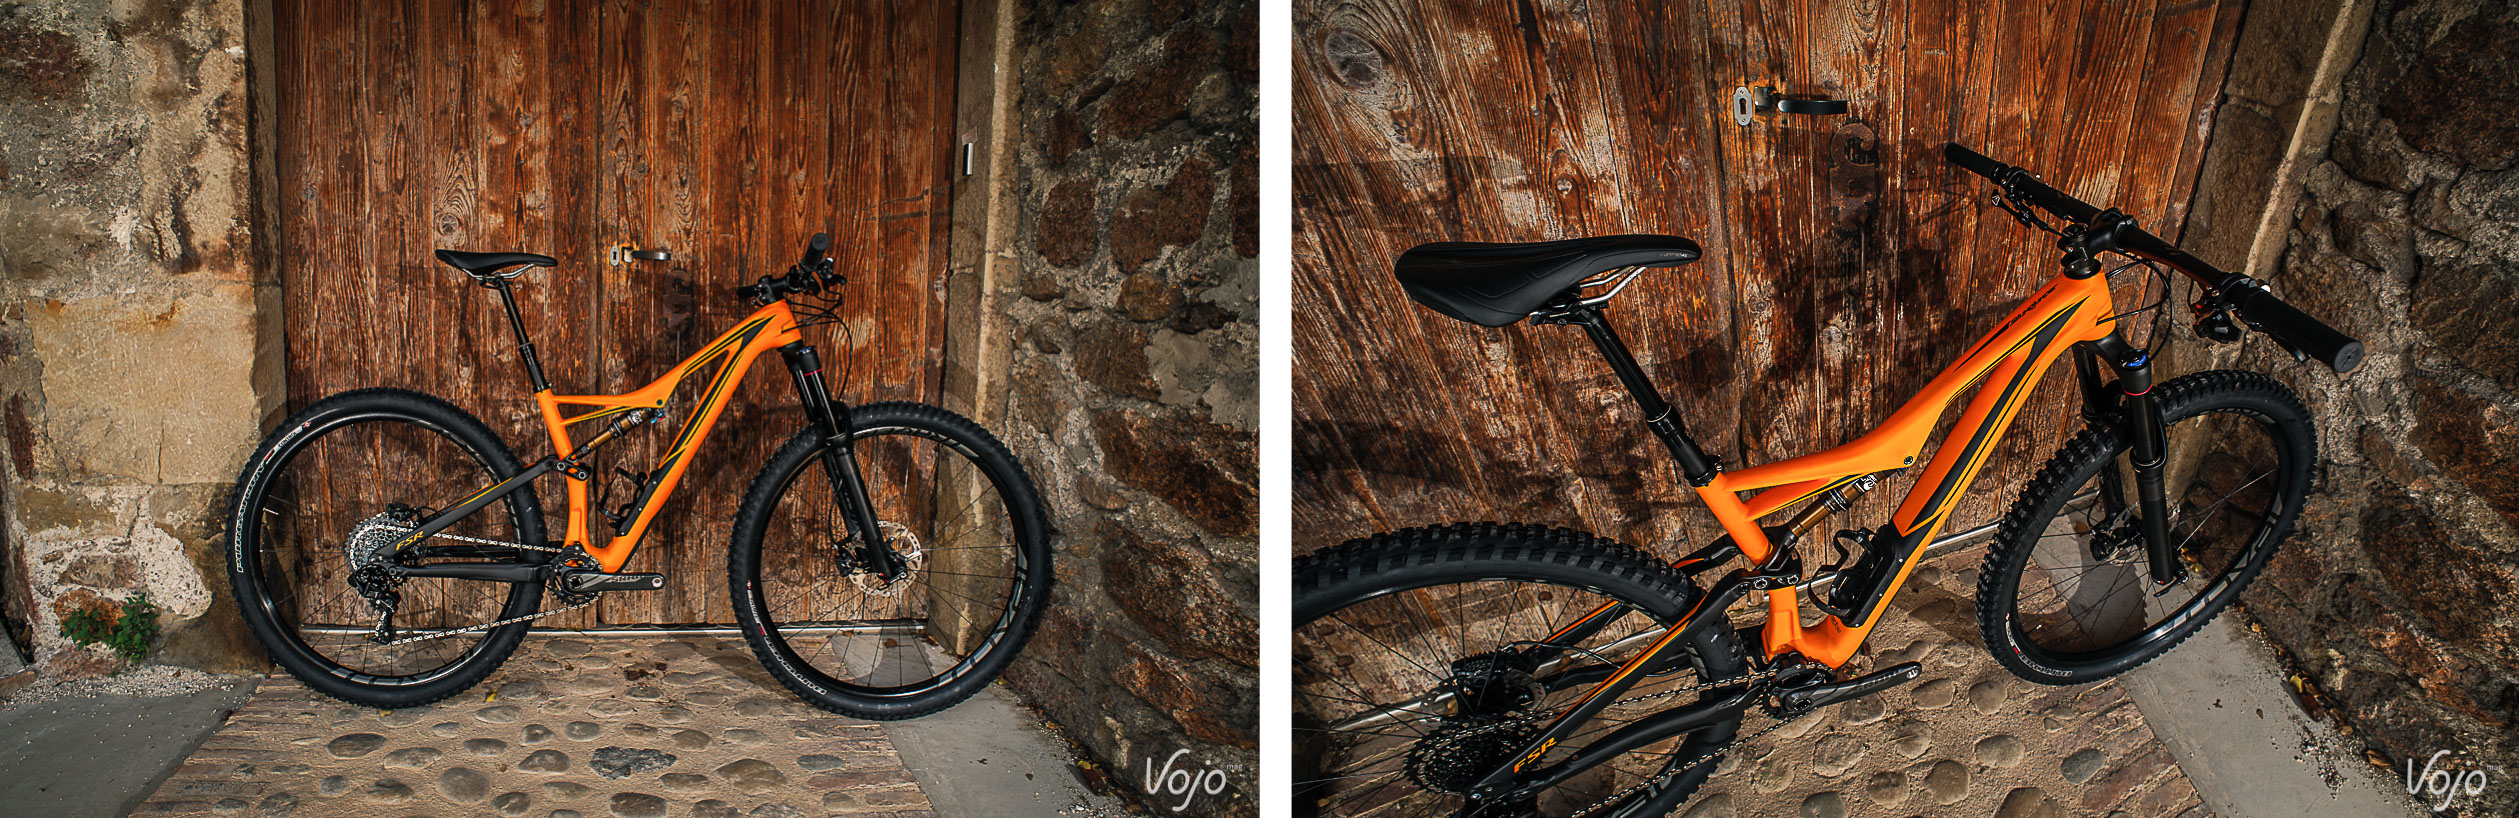 Compo_18_Specialized_Stumpjumper_2016_Swat_Copyright_OBeart_VojoMag-1